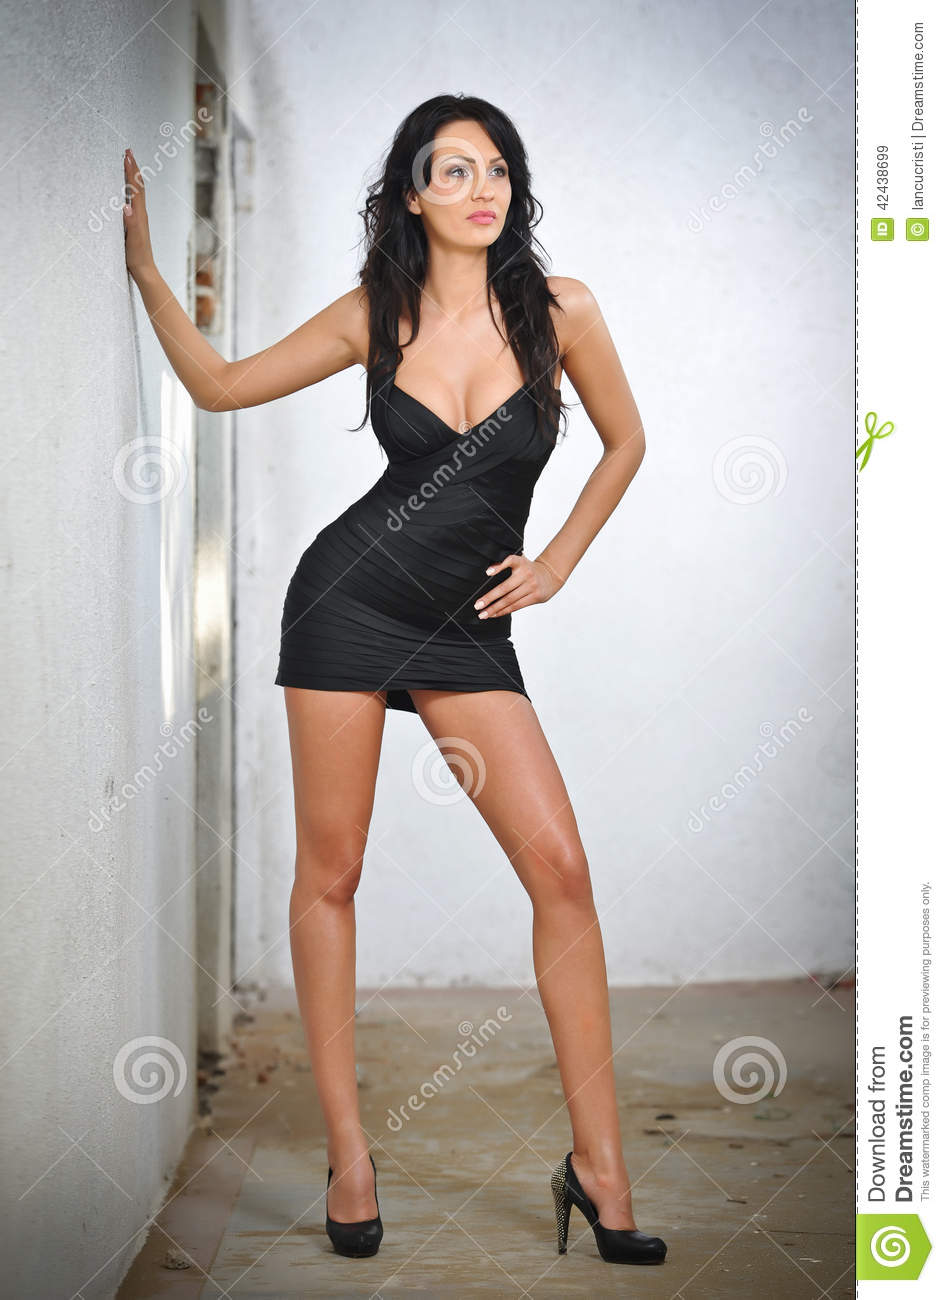 f0c0cbe2c9d36 Charming young brunette woman in black tight fit dress posing against a wall